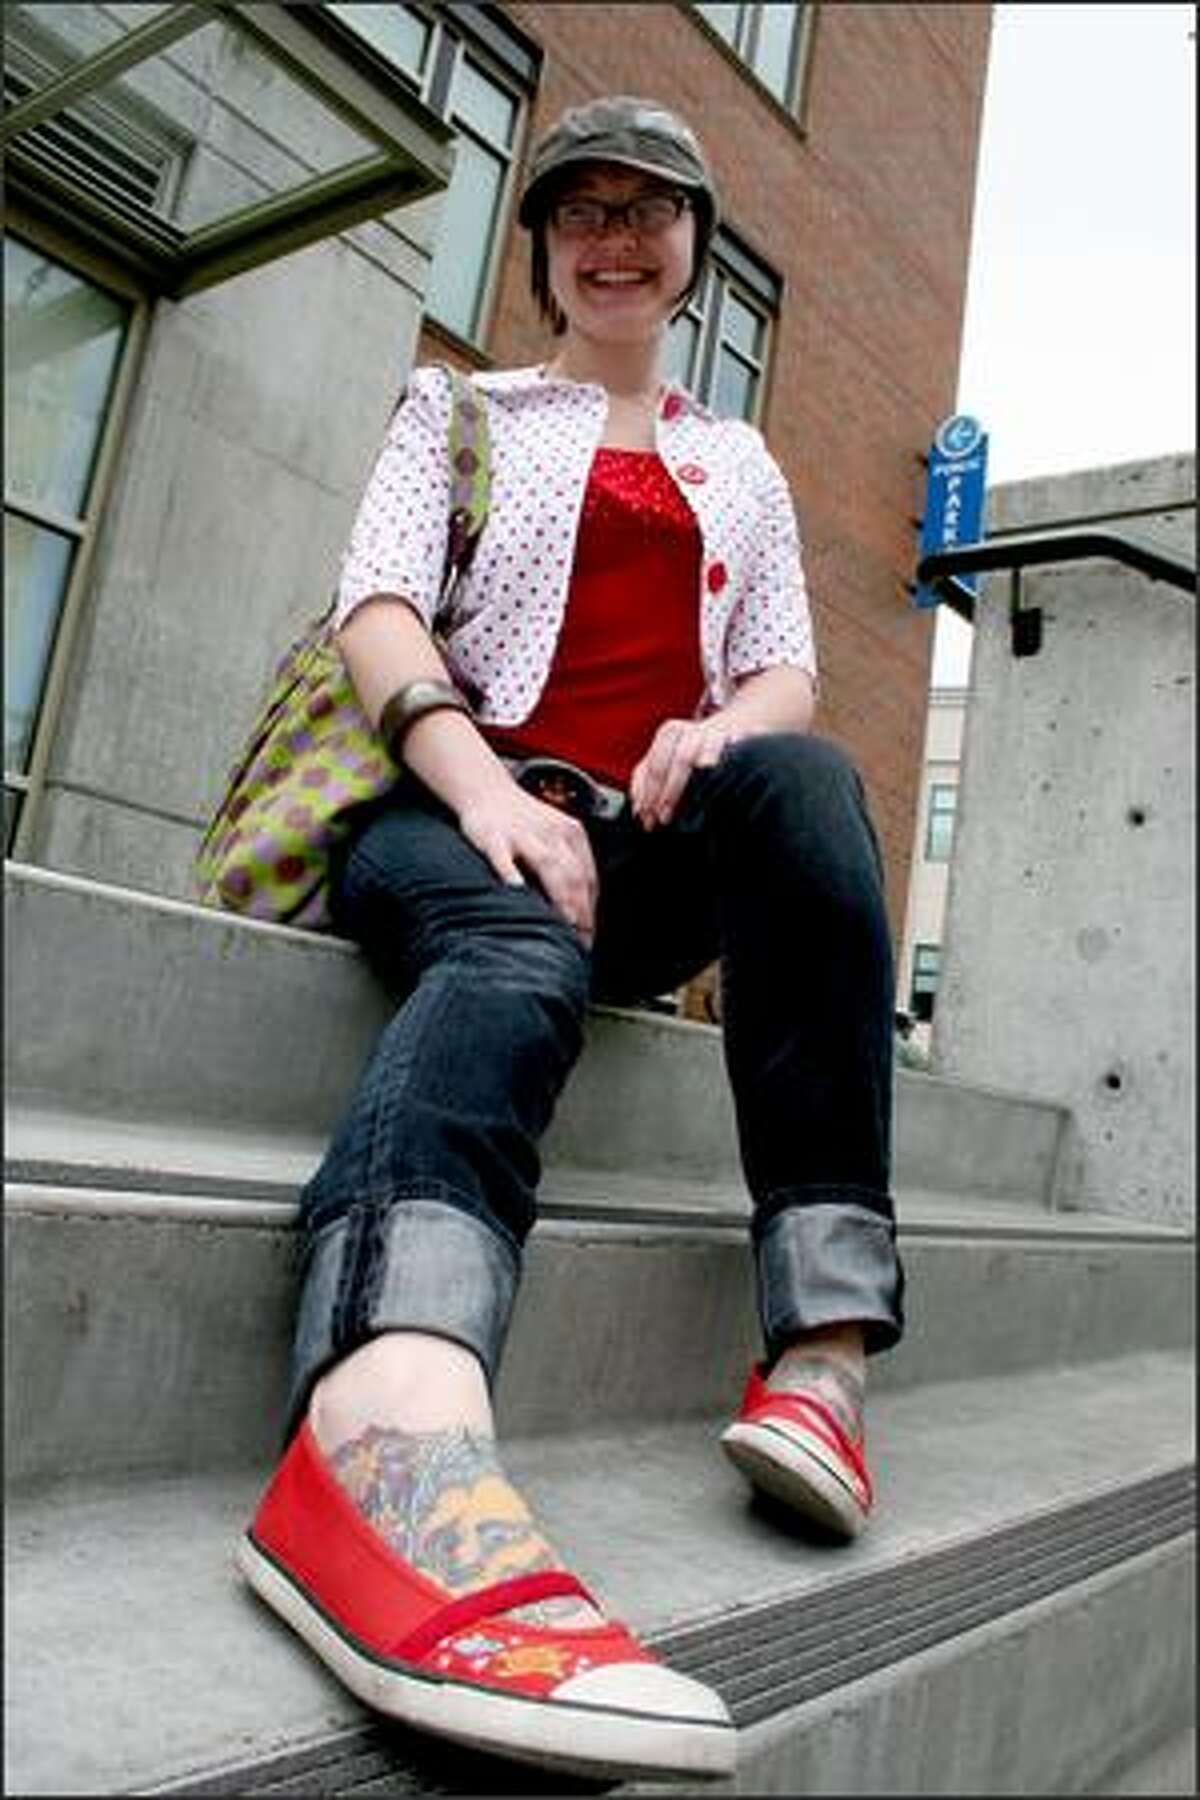 Alexis Macauley relaxes outside the Sunday market. She goes for an